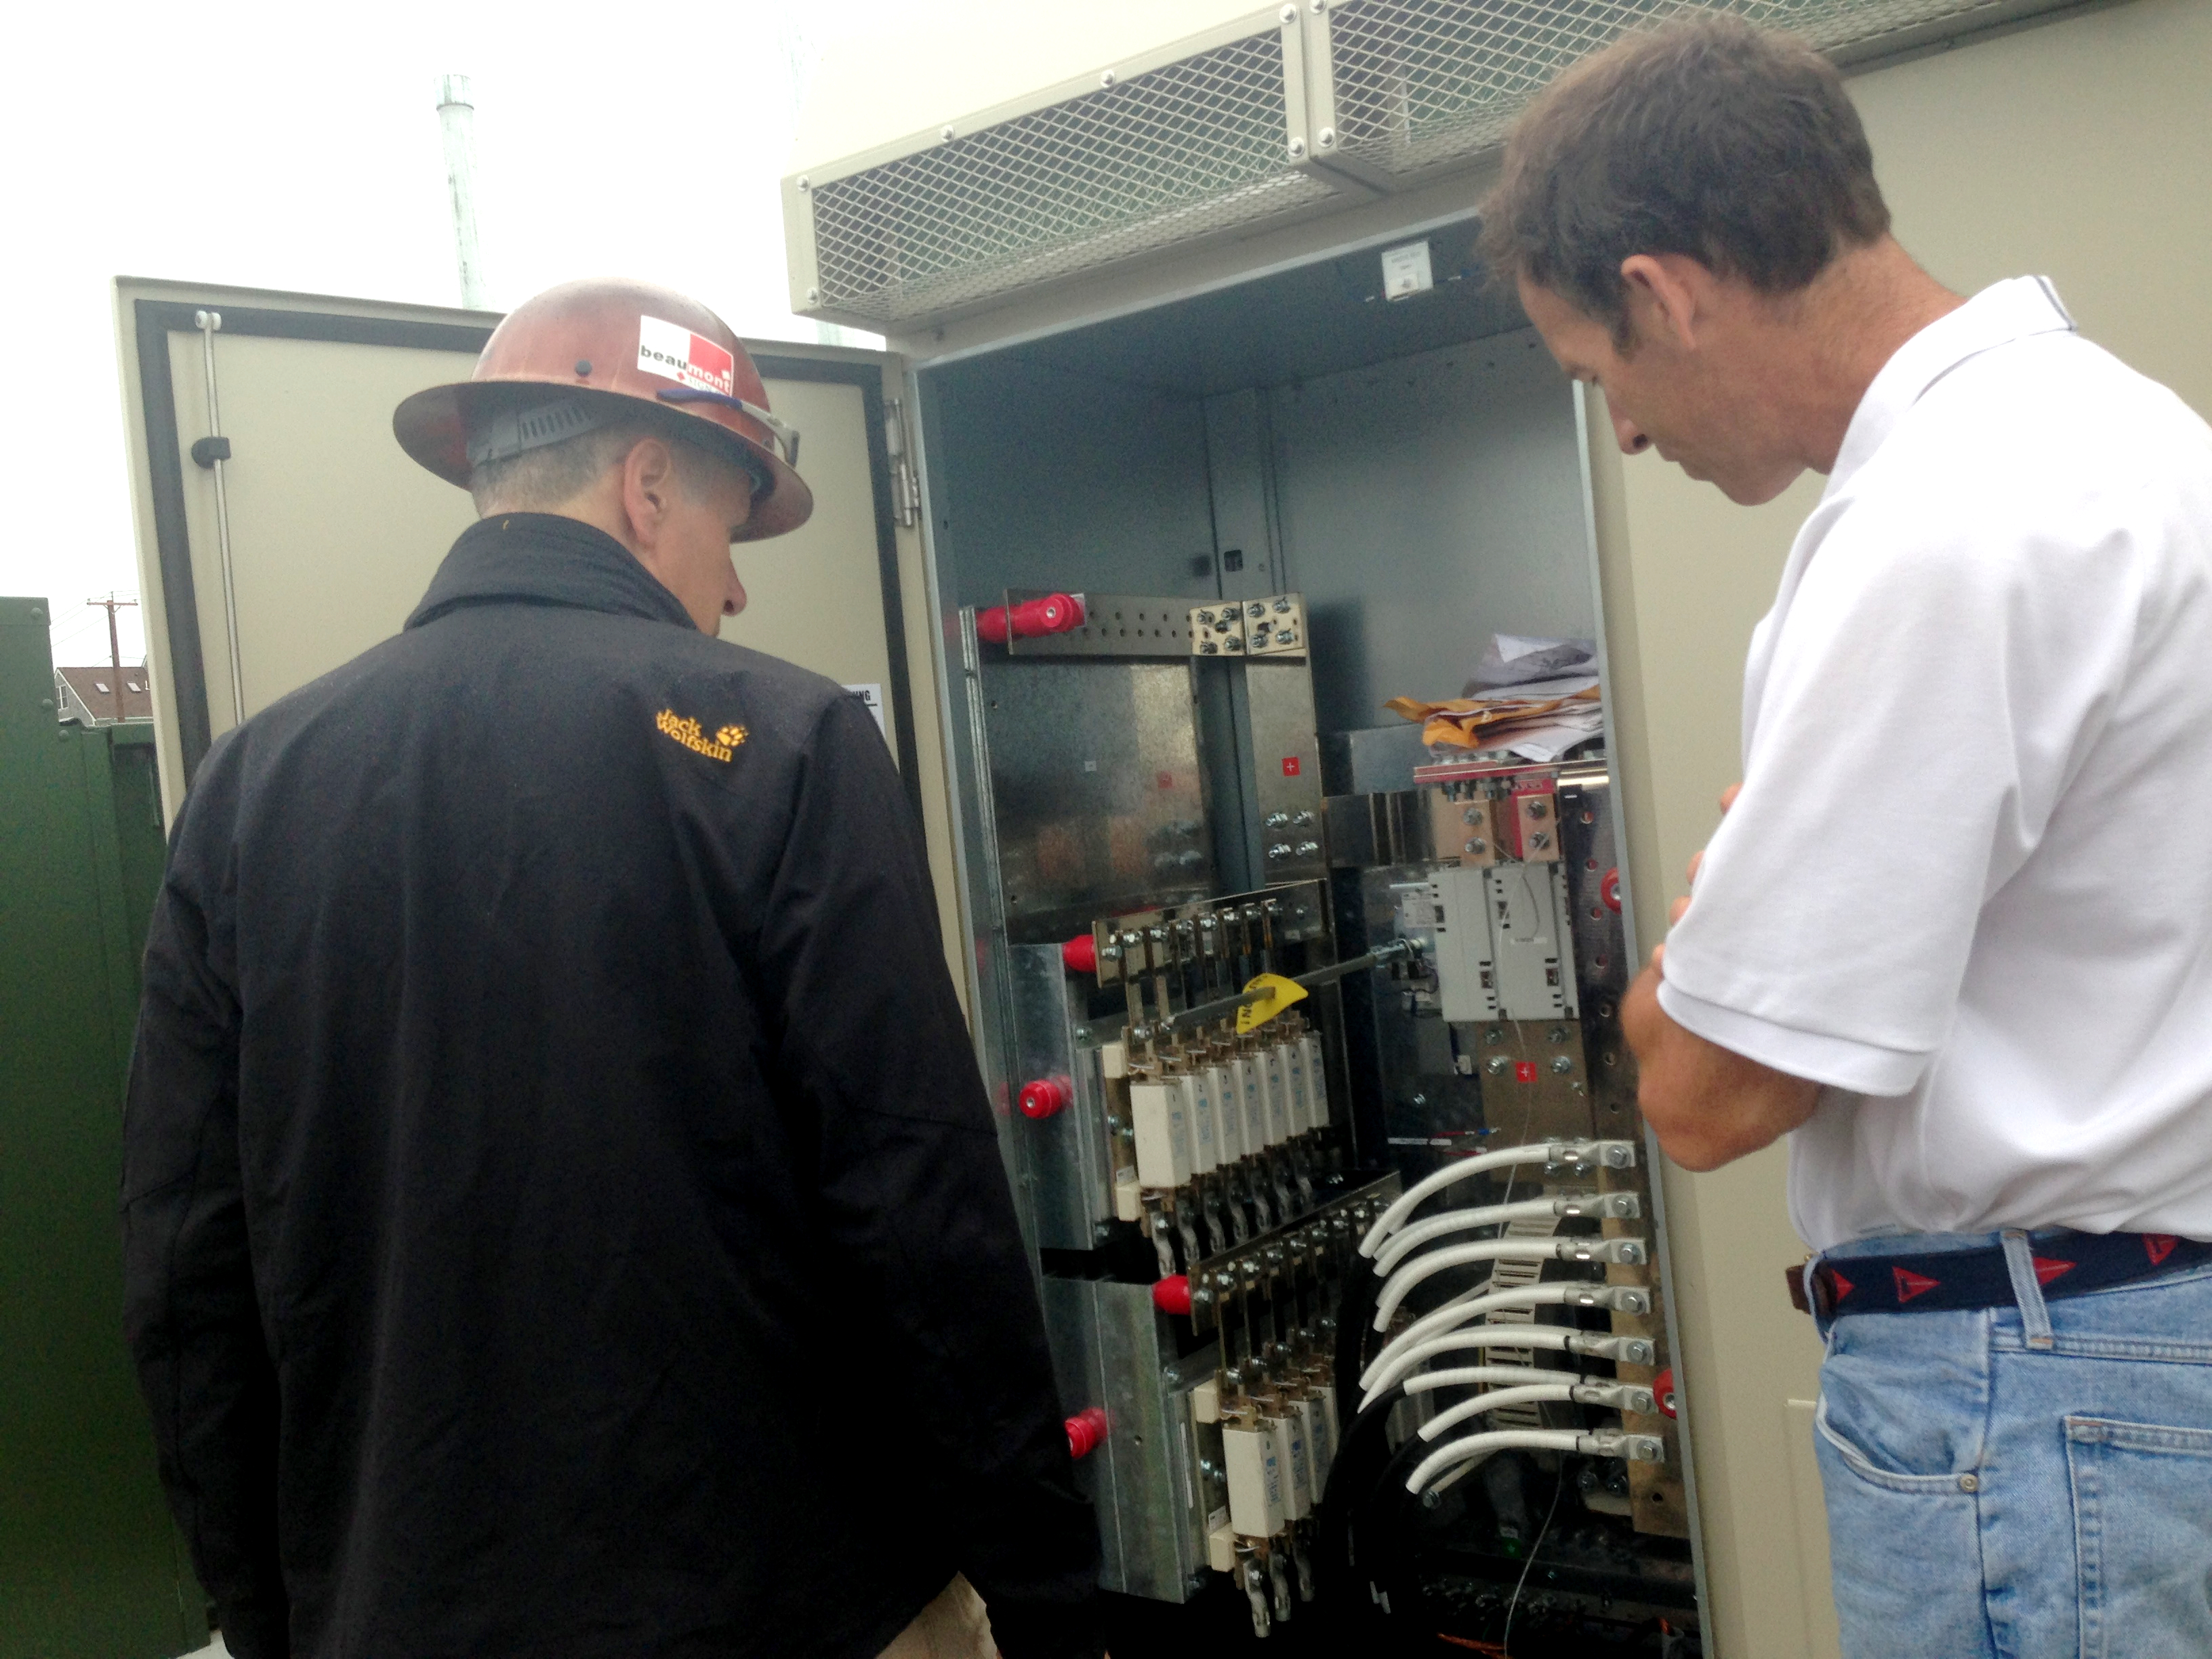 Inspecting the inverter installation of this 500kW system